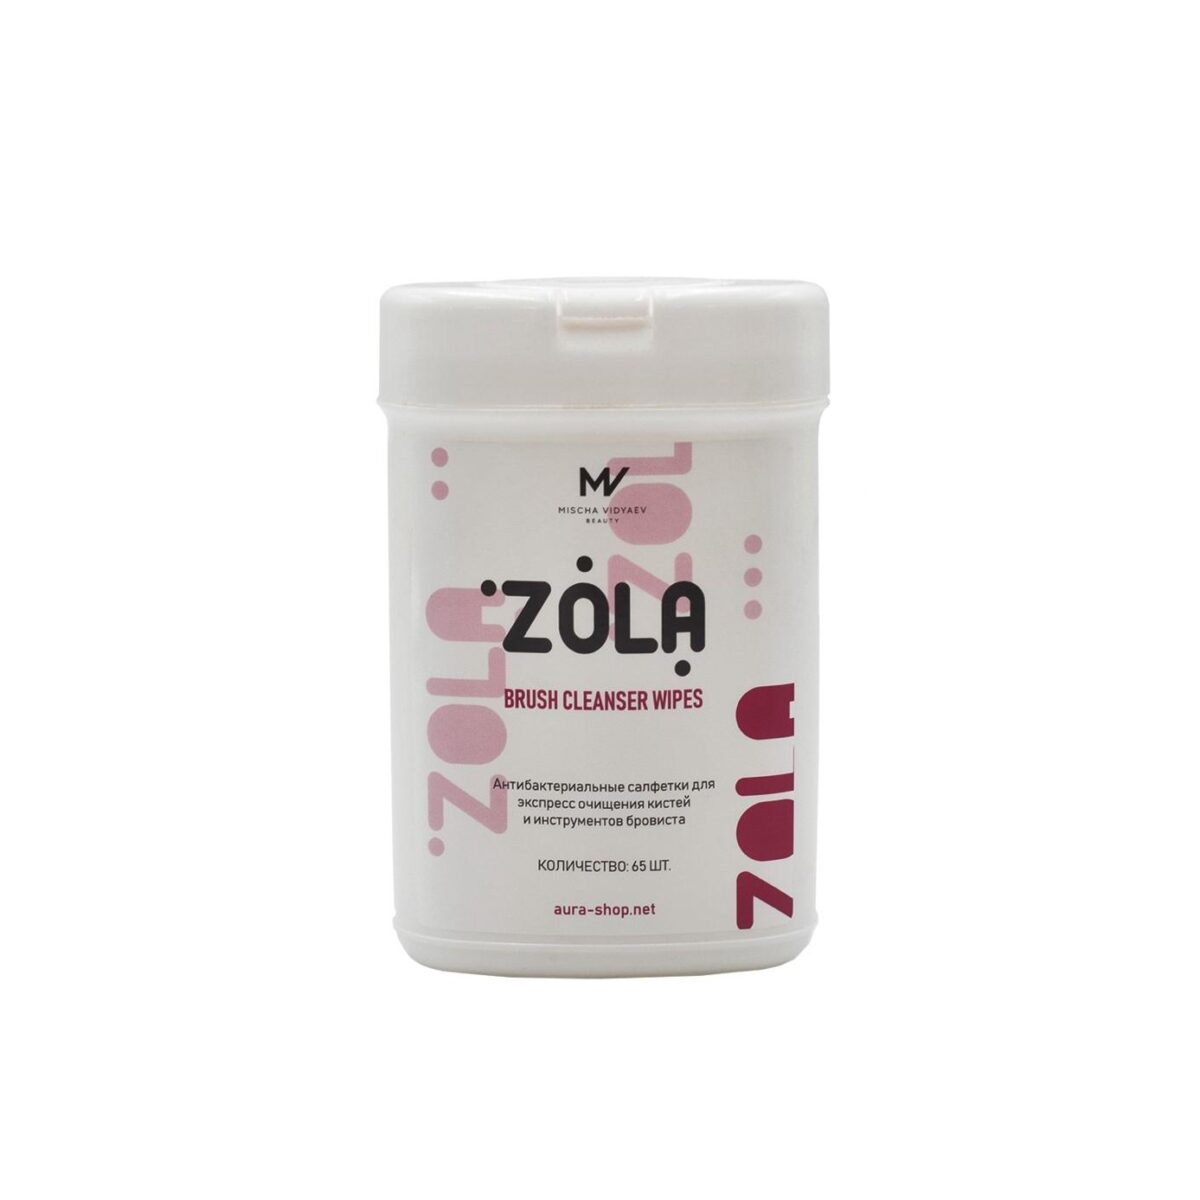 zola brush cleanser wipes